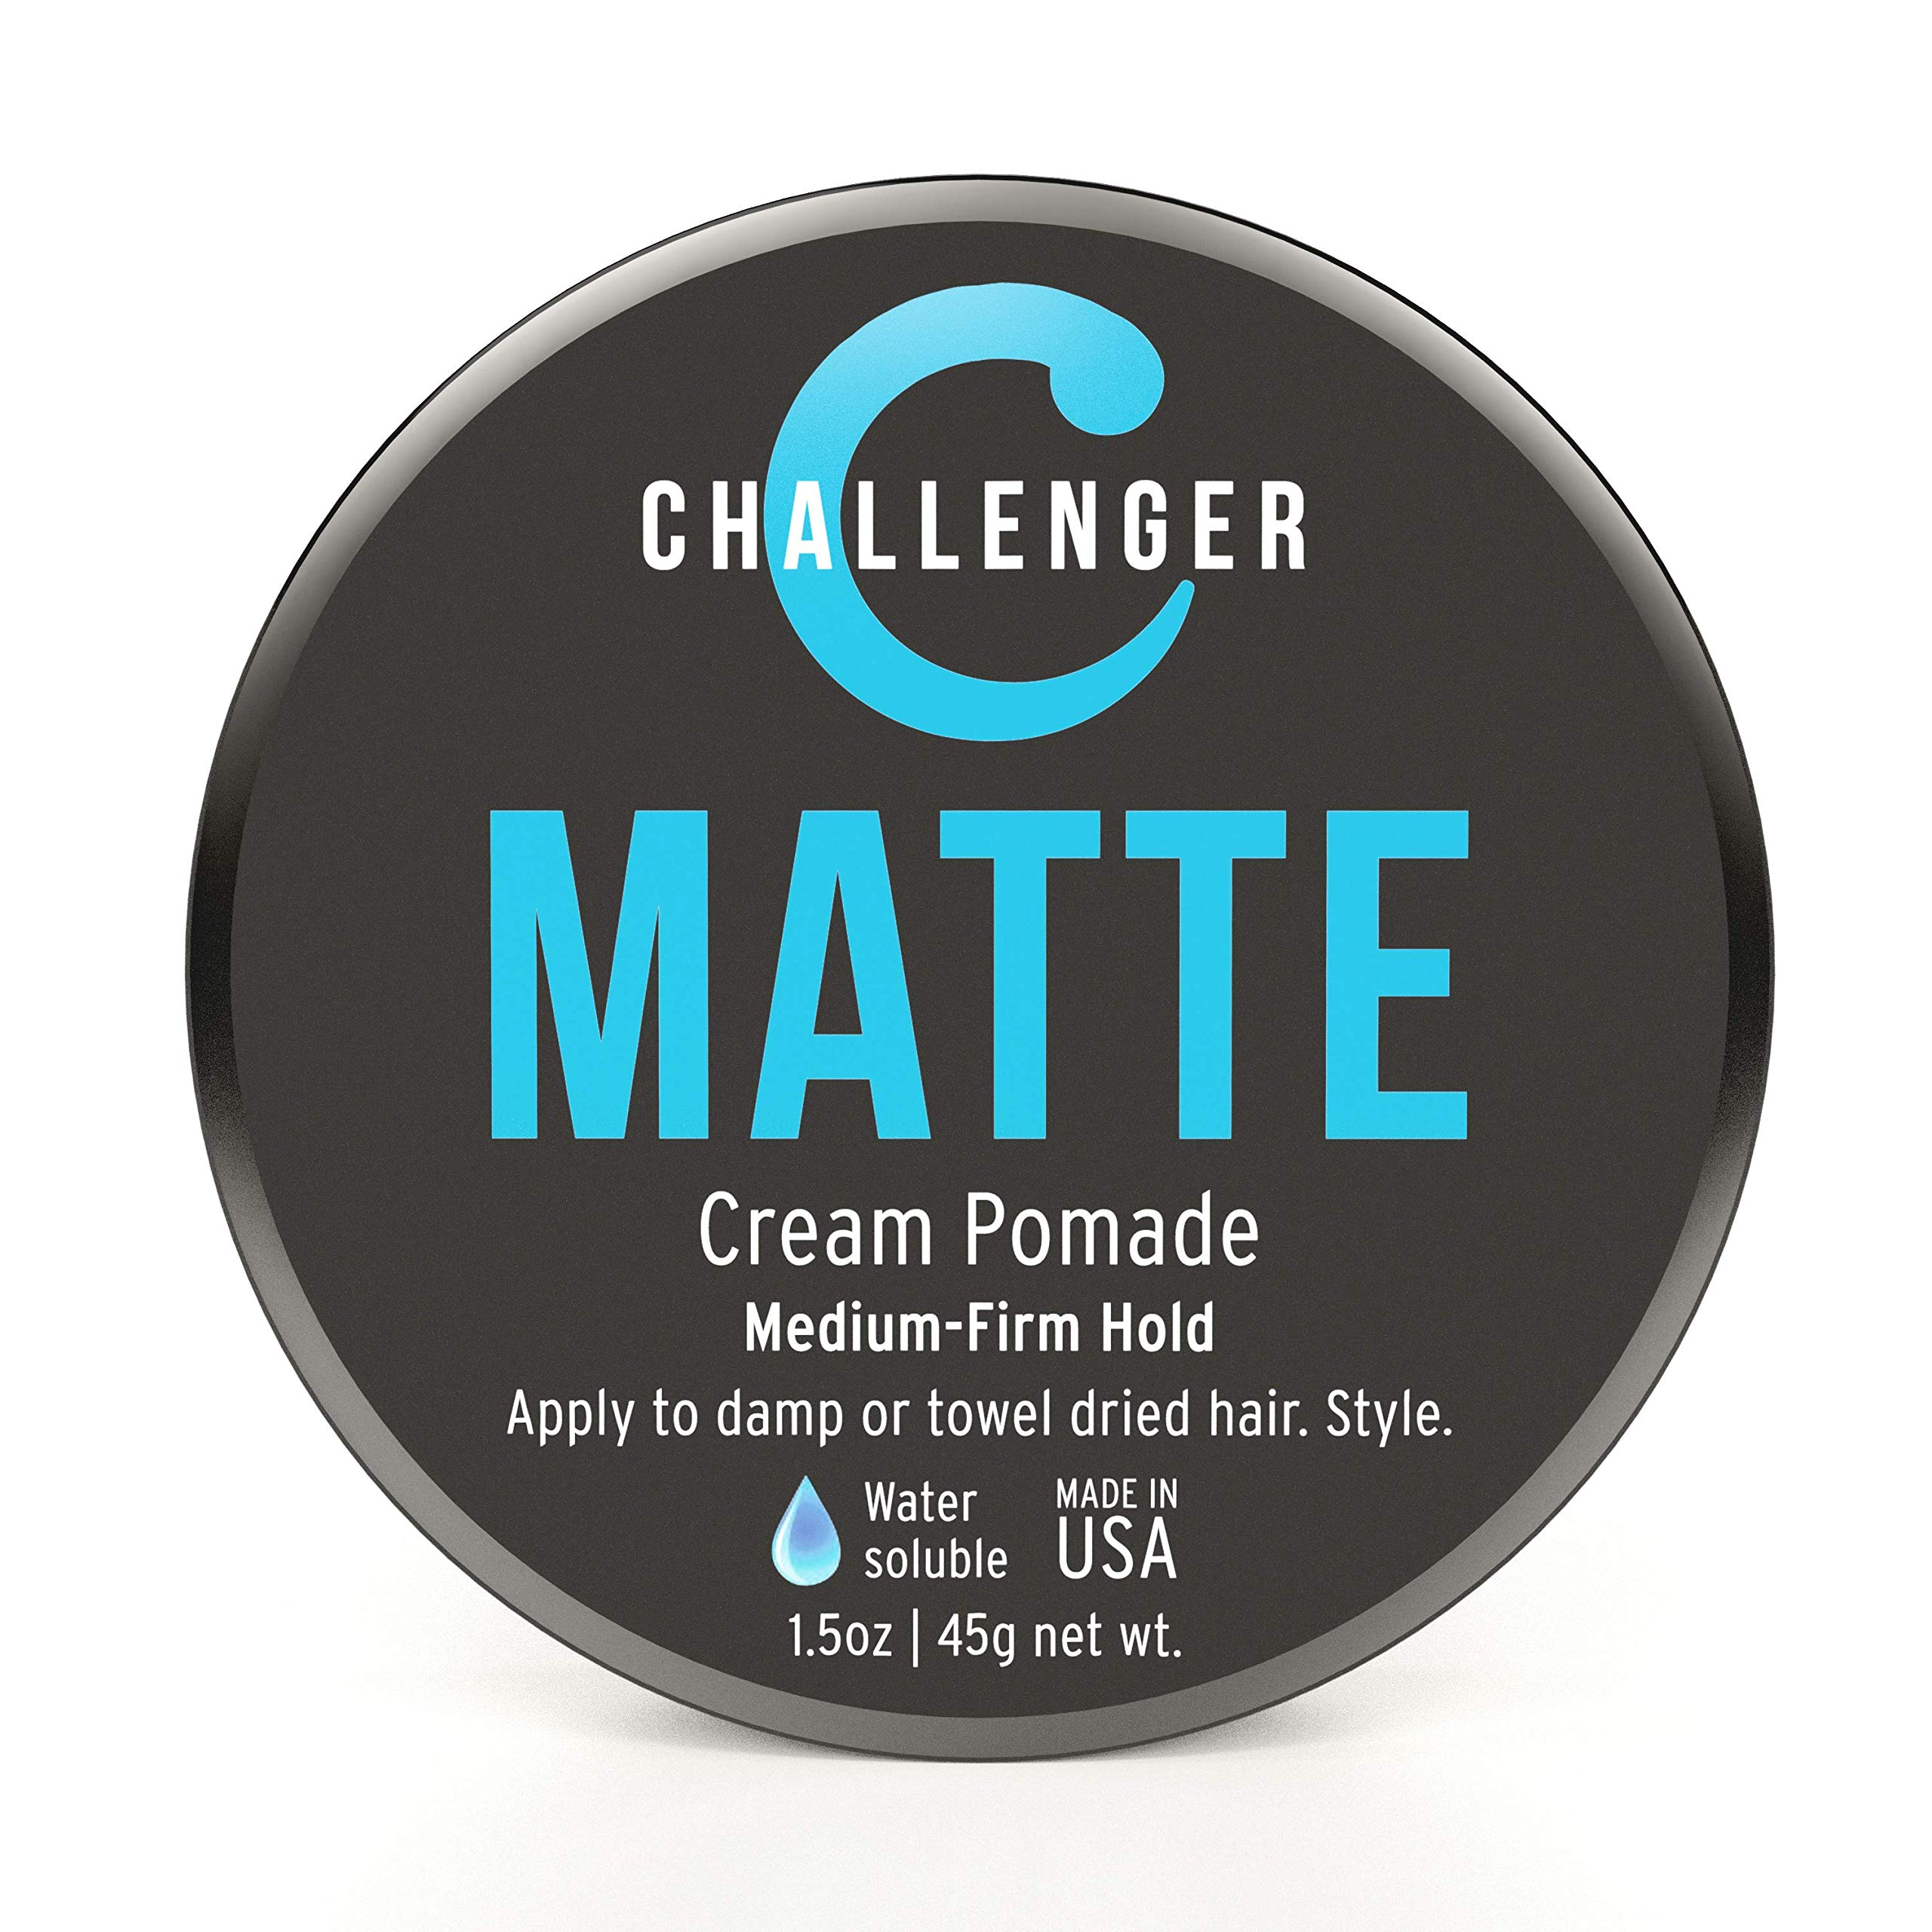 Challenger Men's Matte Cream Pomade, 1.5 Ounce   Natural Finish, Clean & Subtle Scent   Medium Firm Hold   Best Water Based Hair Styling Paste, Wax, Fiber, Clay, Gel All In One